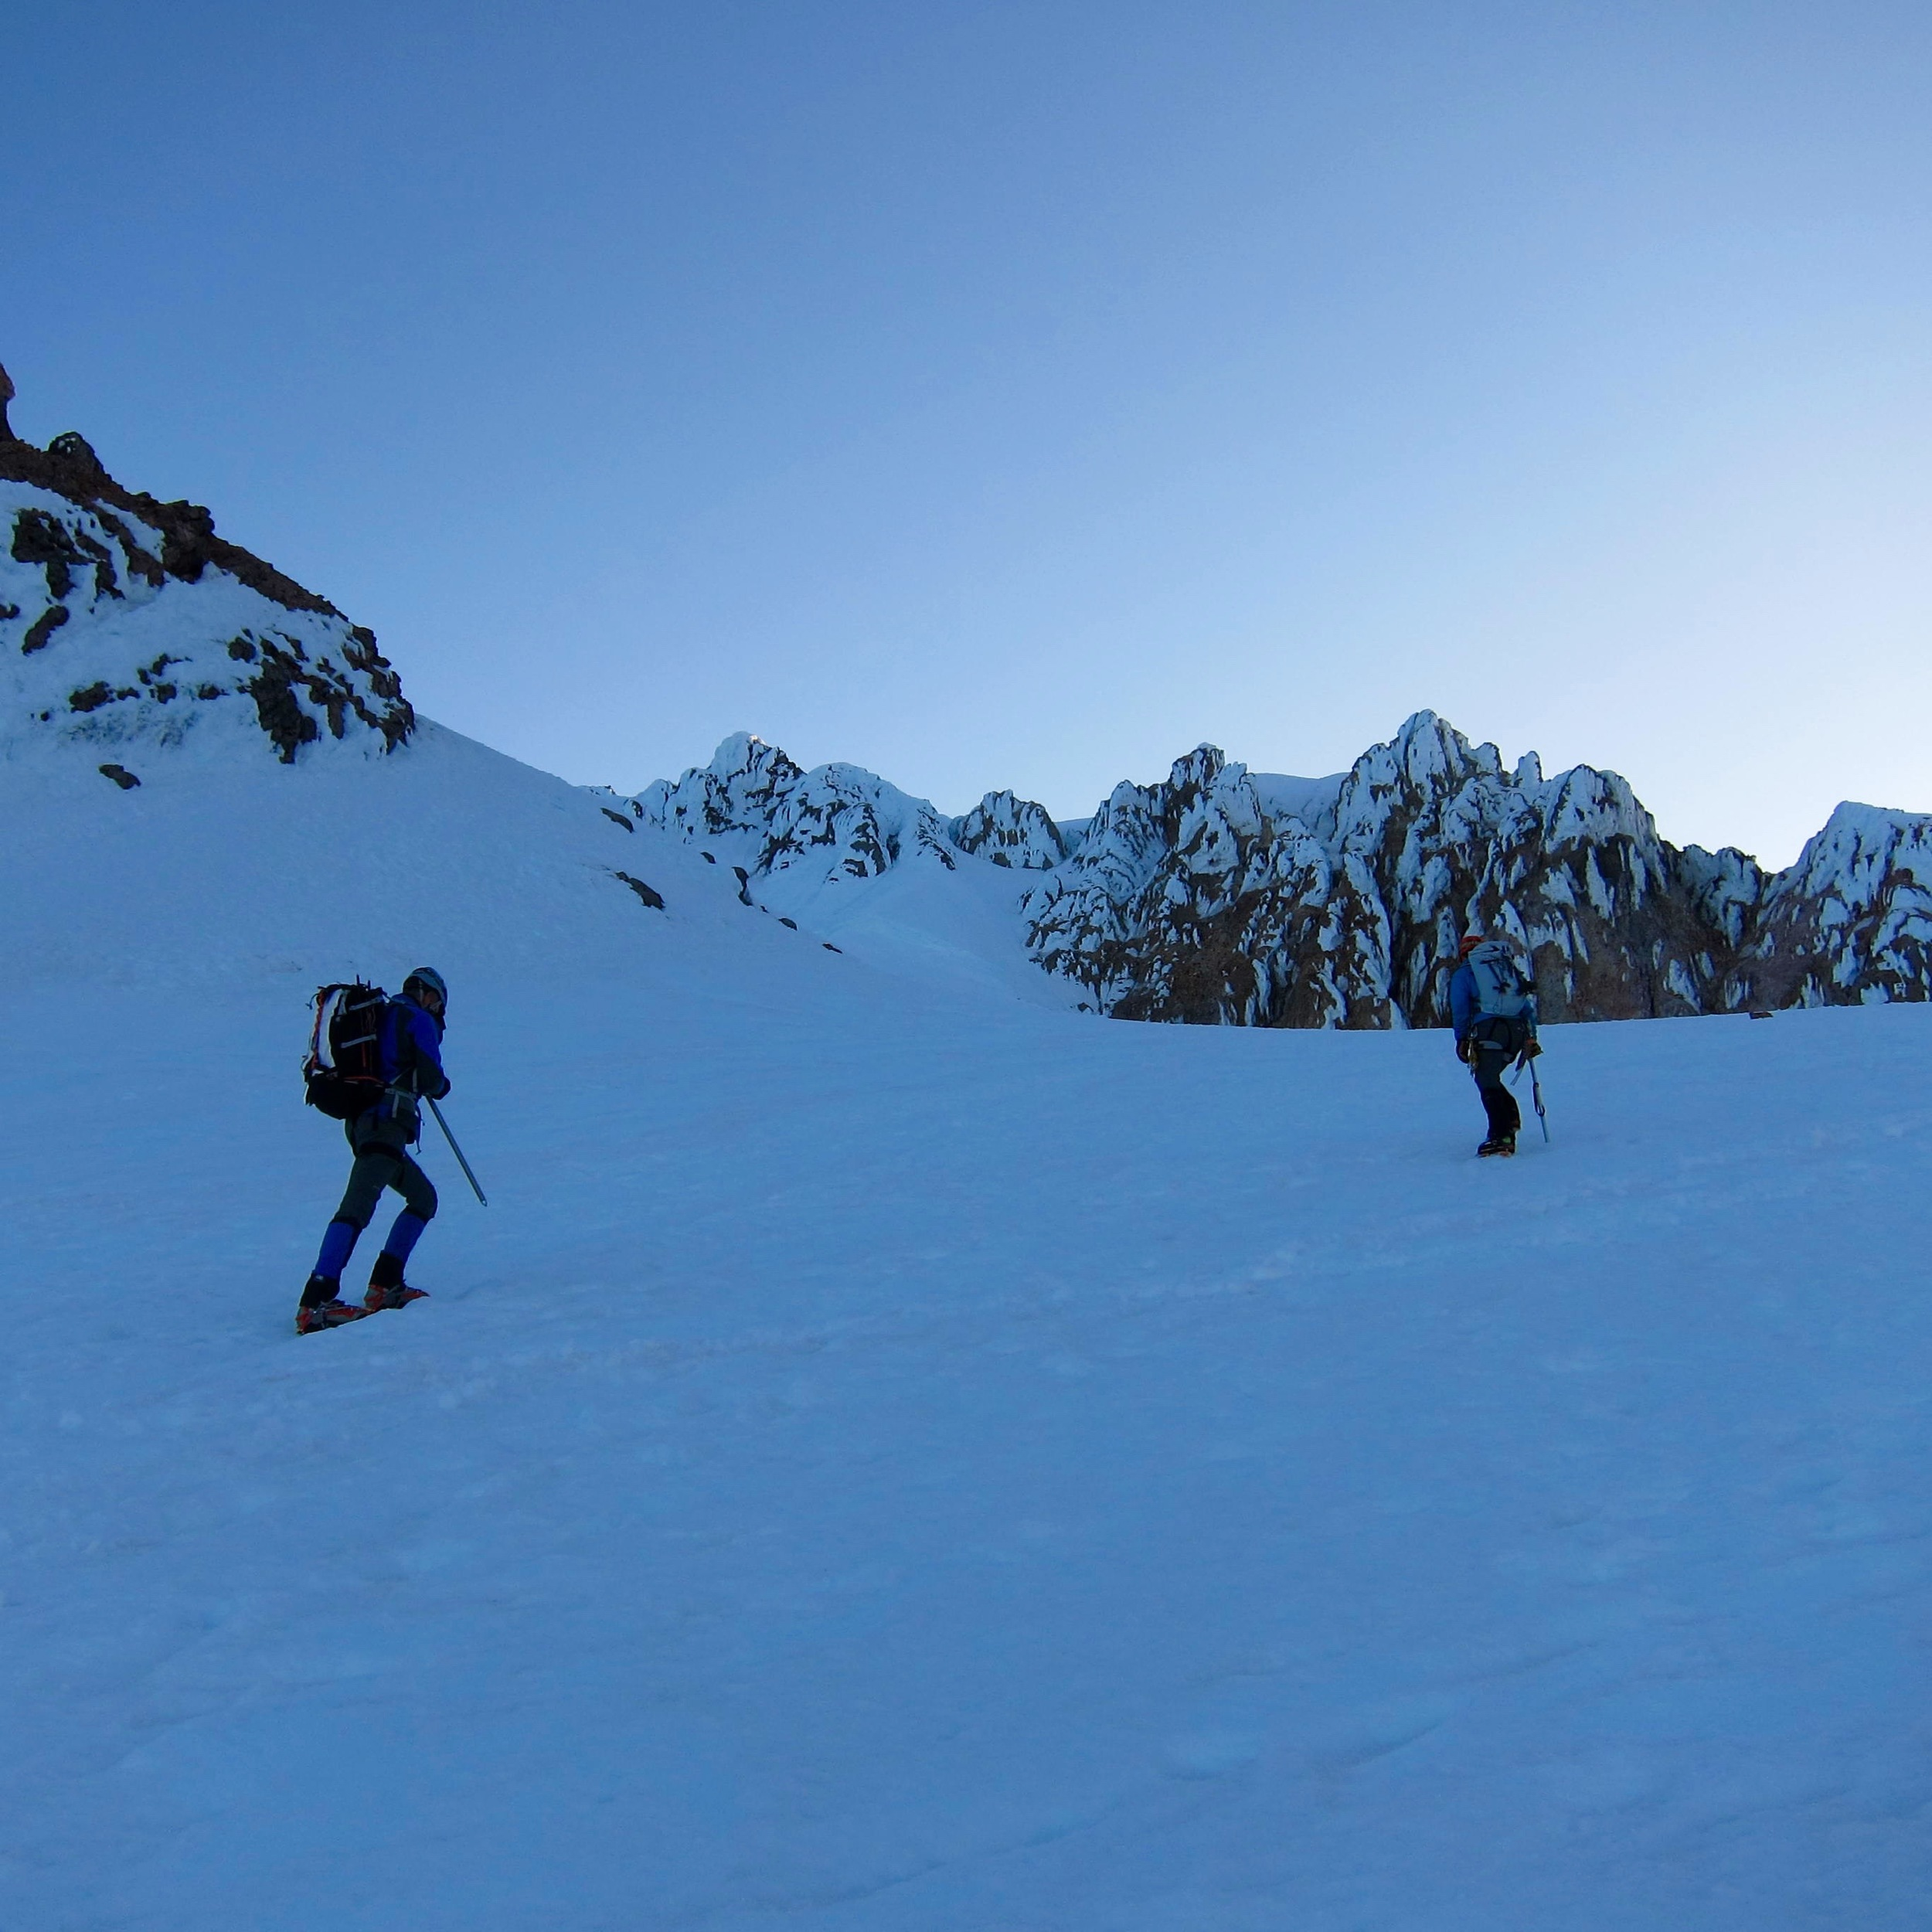 Heading up from the crater. The summit is above the buttresses in the center.